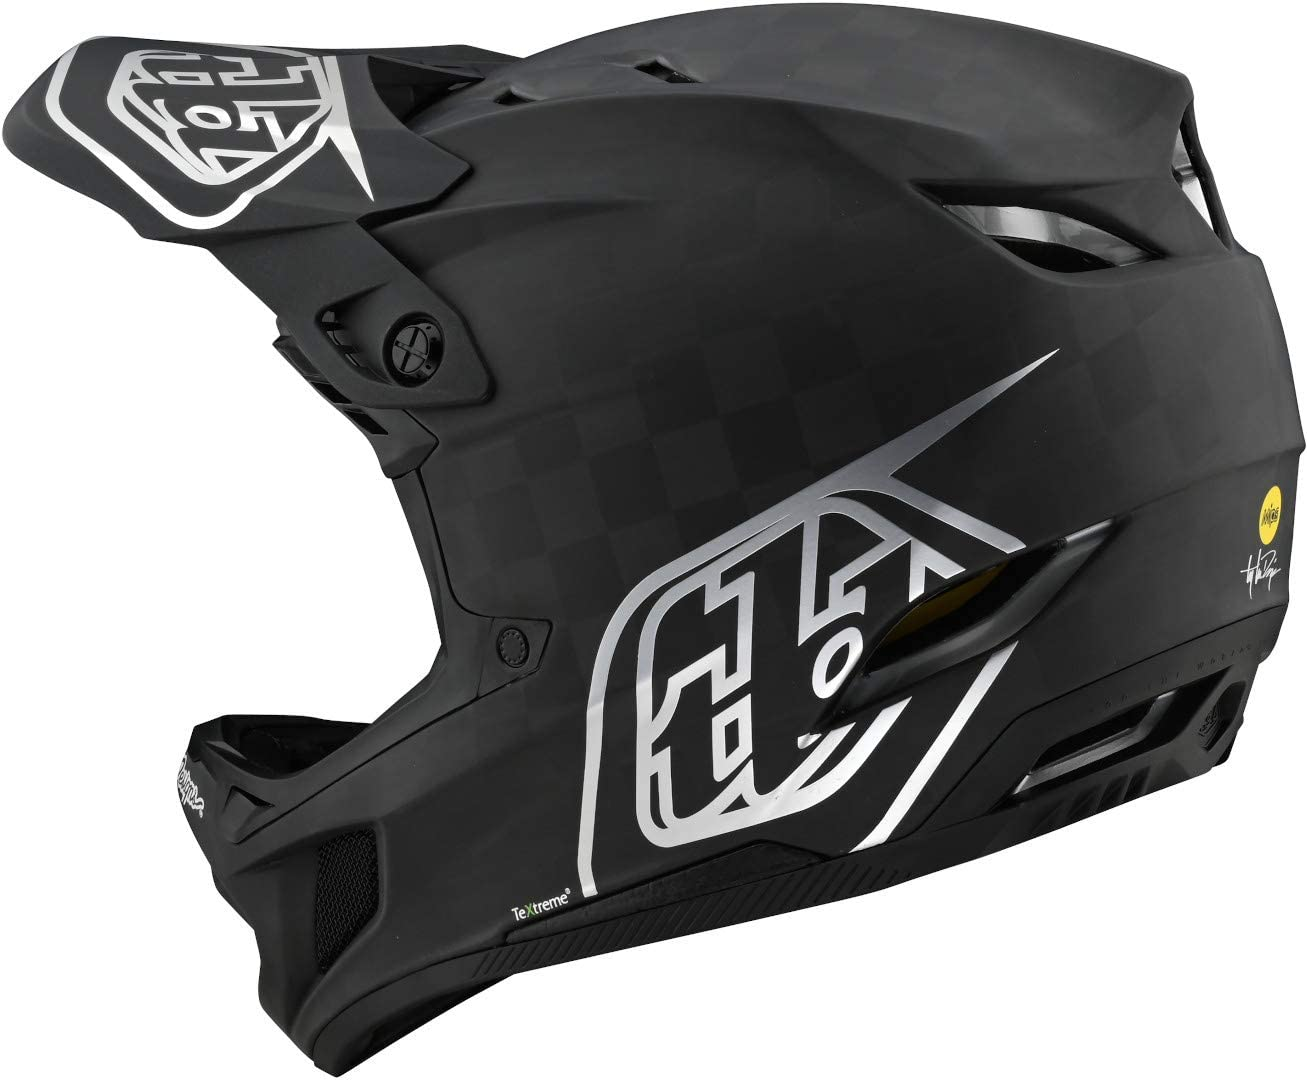 Troy Lee Designs D4 Carbon Stealth Adult Off-Road BMX Cycling Helmet